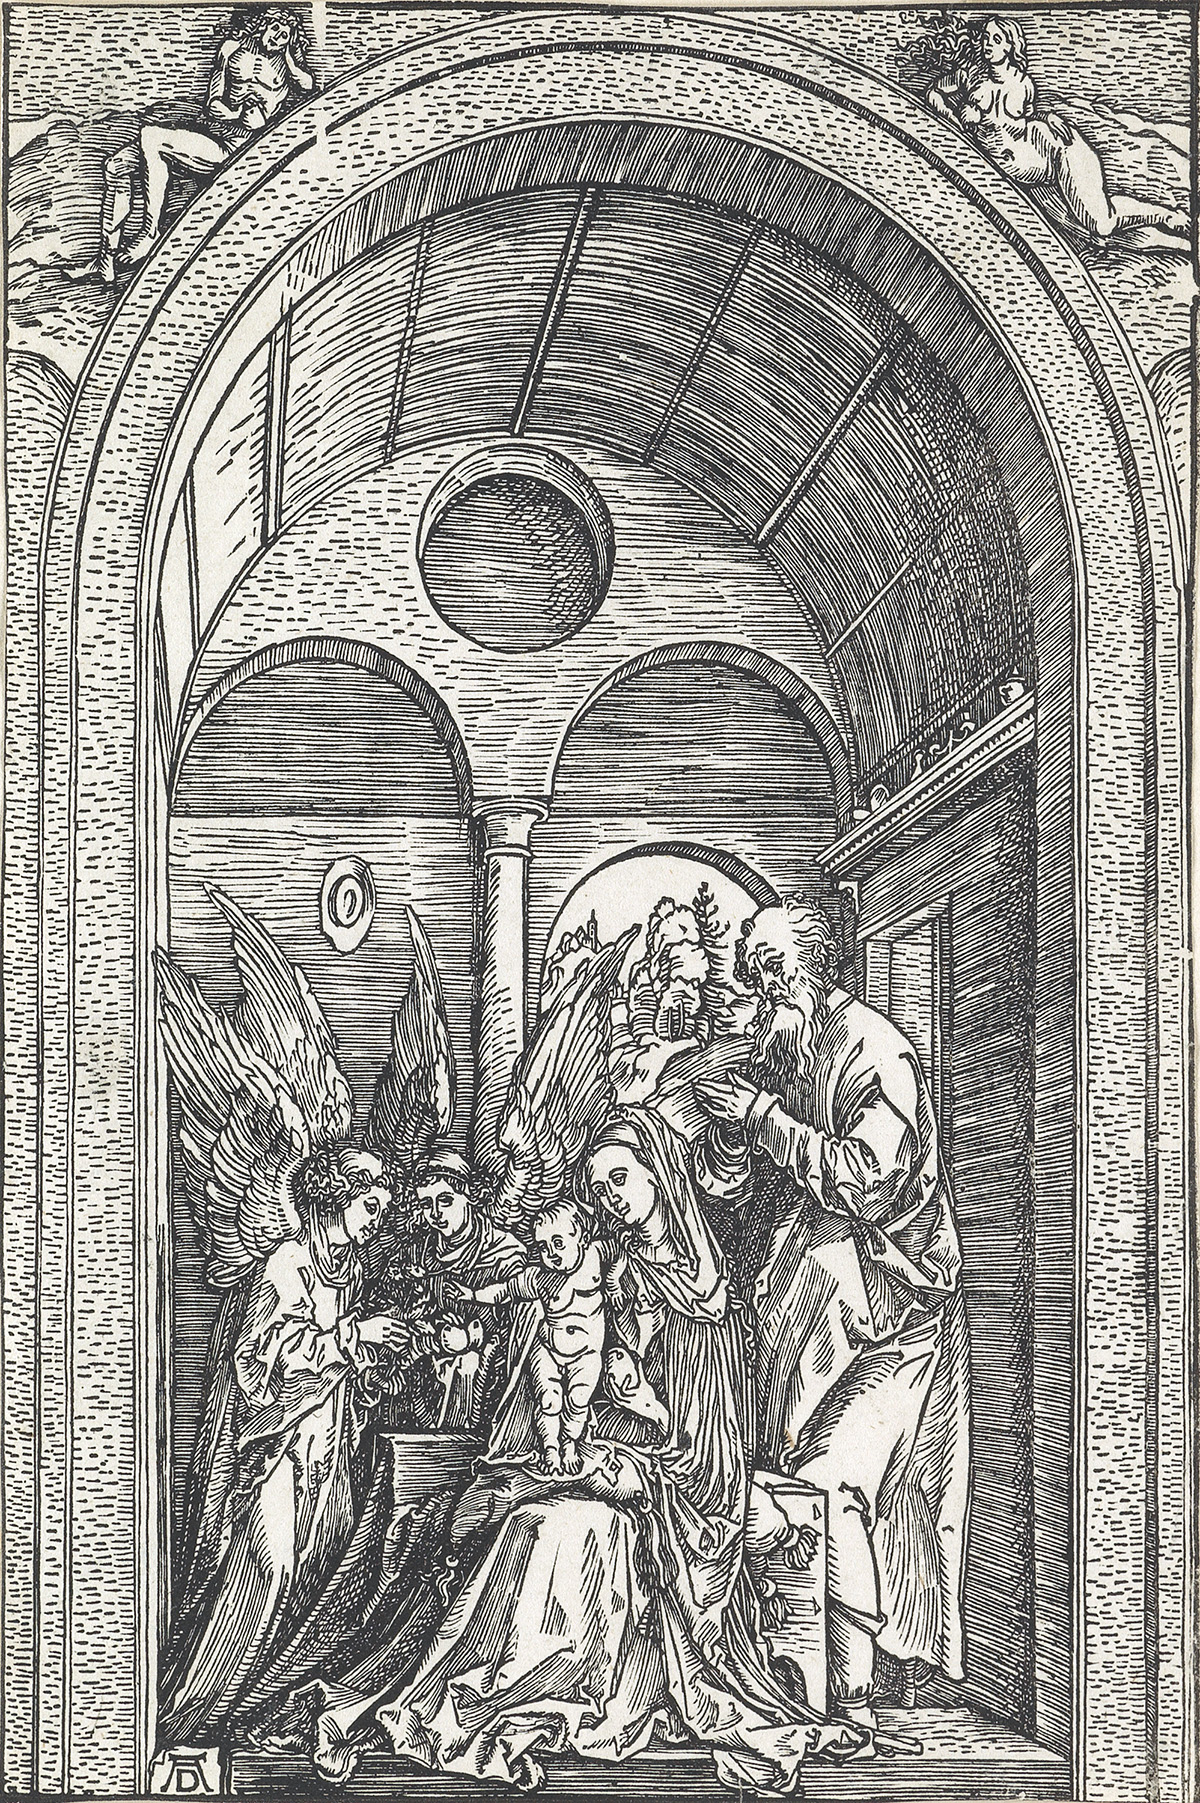 ALBRECHT DÜRER The Holy Family with Two Angels in a Vaulted Hall.